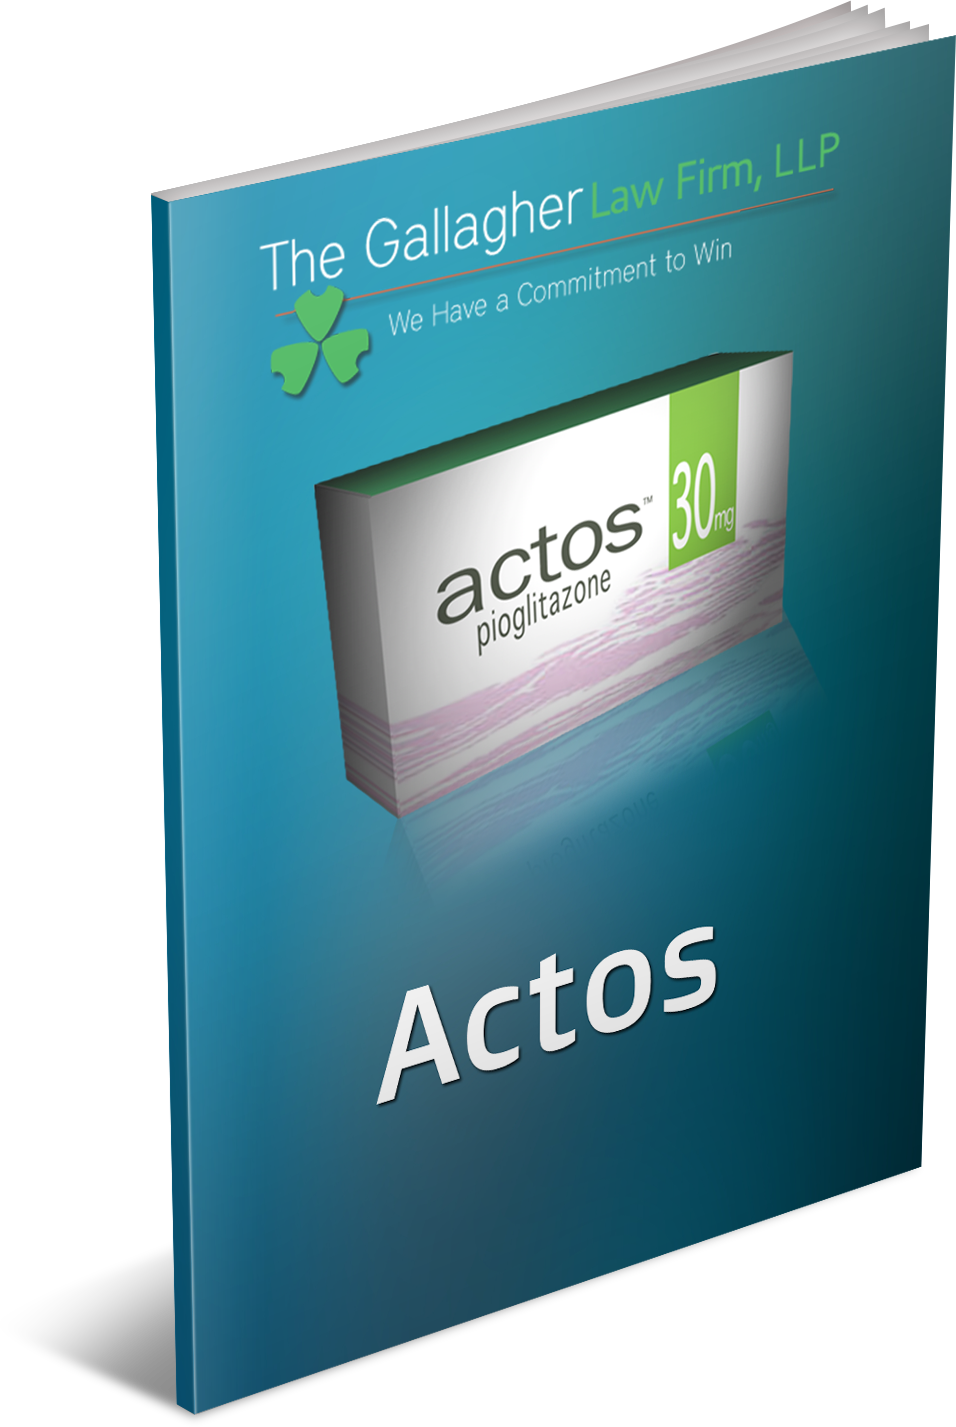 Actos Ebook